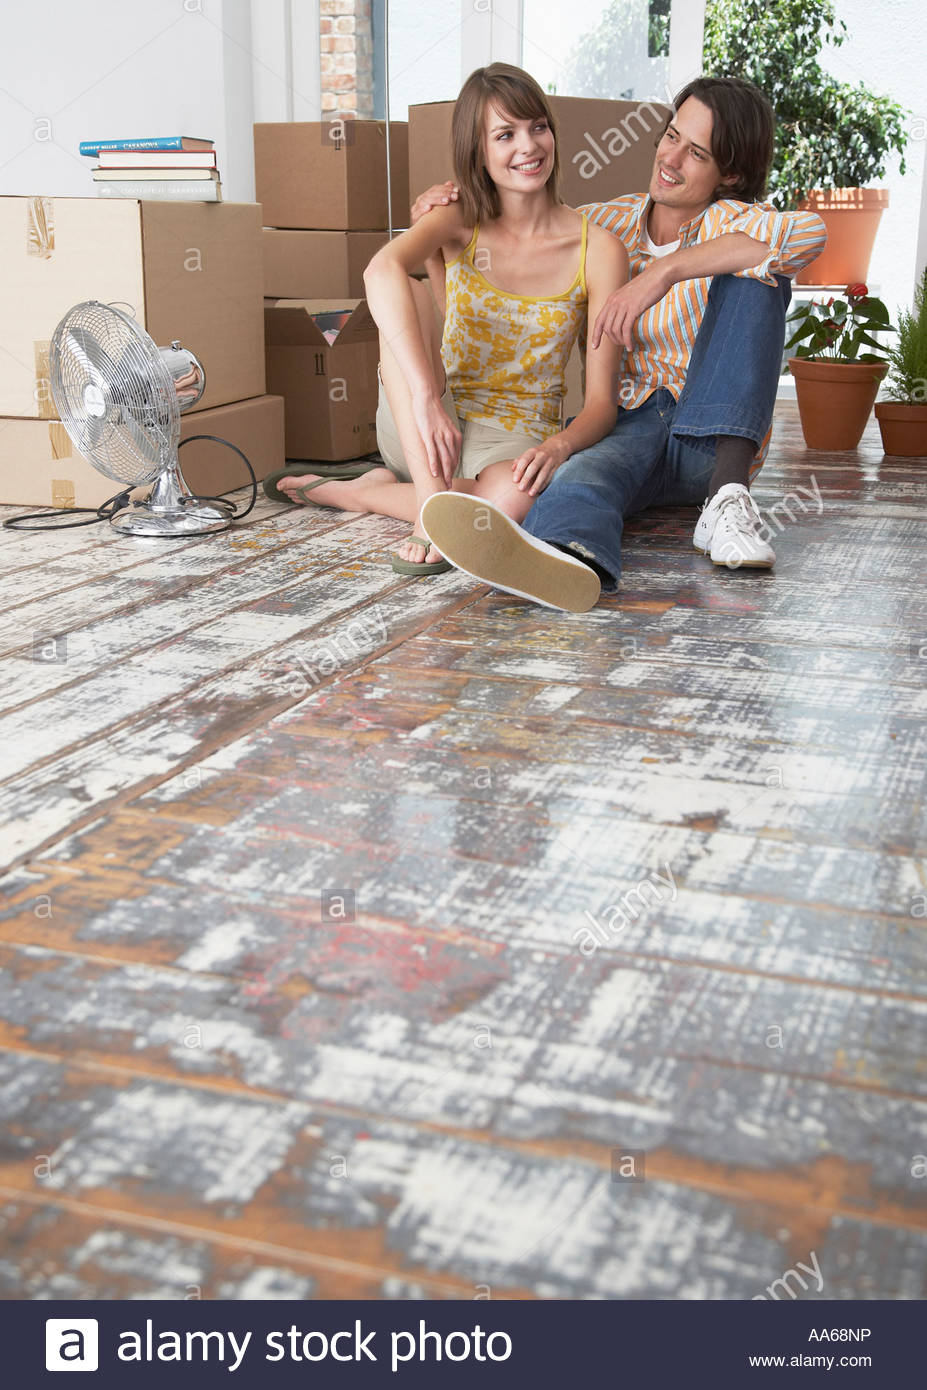 Man and woman sitting on hardwood floor with cardboard boxes and fan - Stock Image